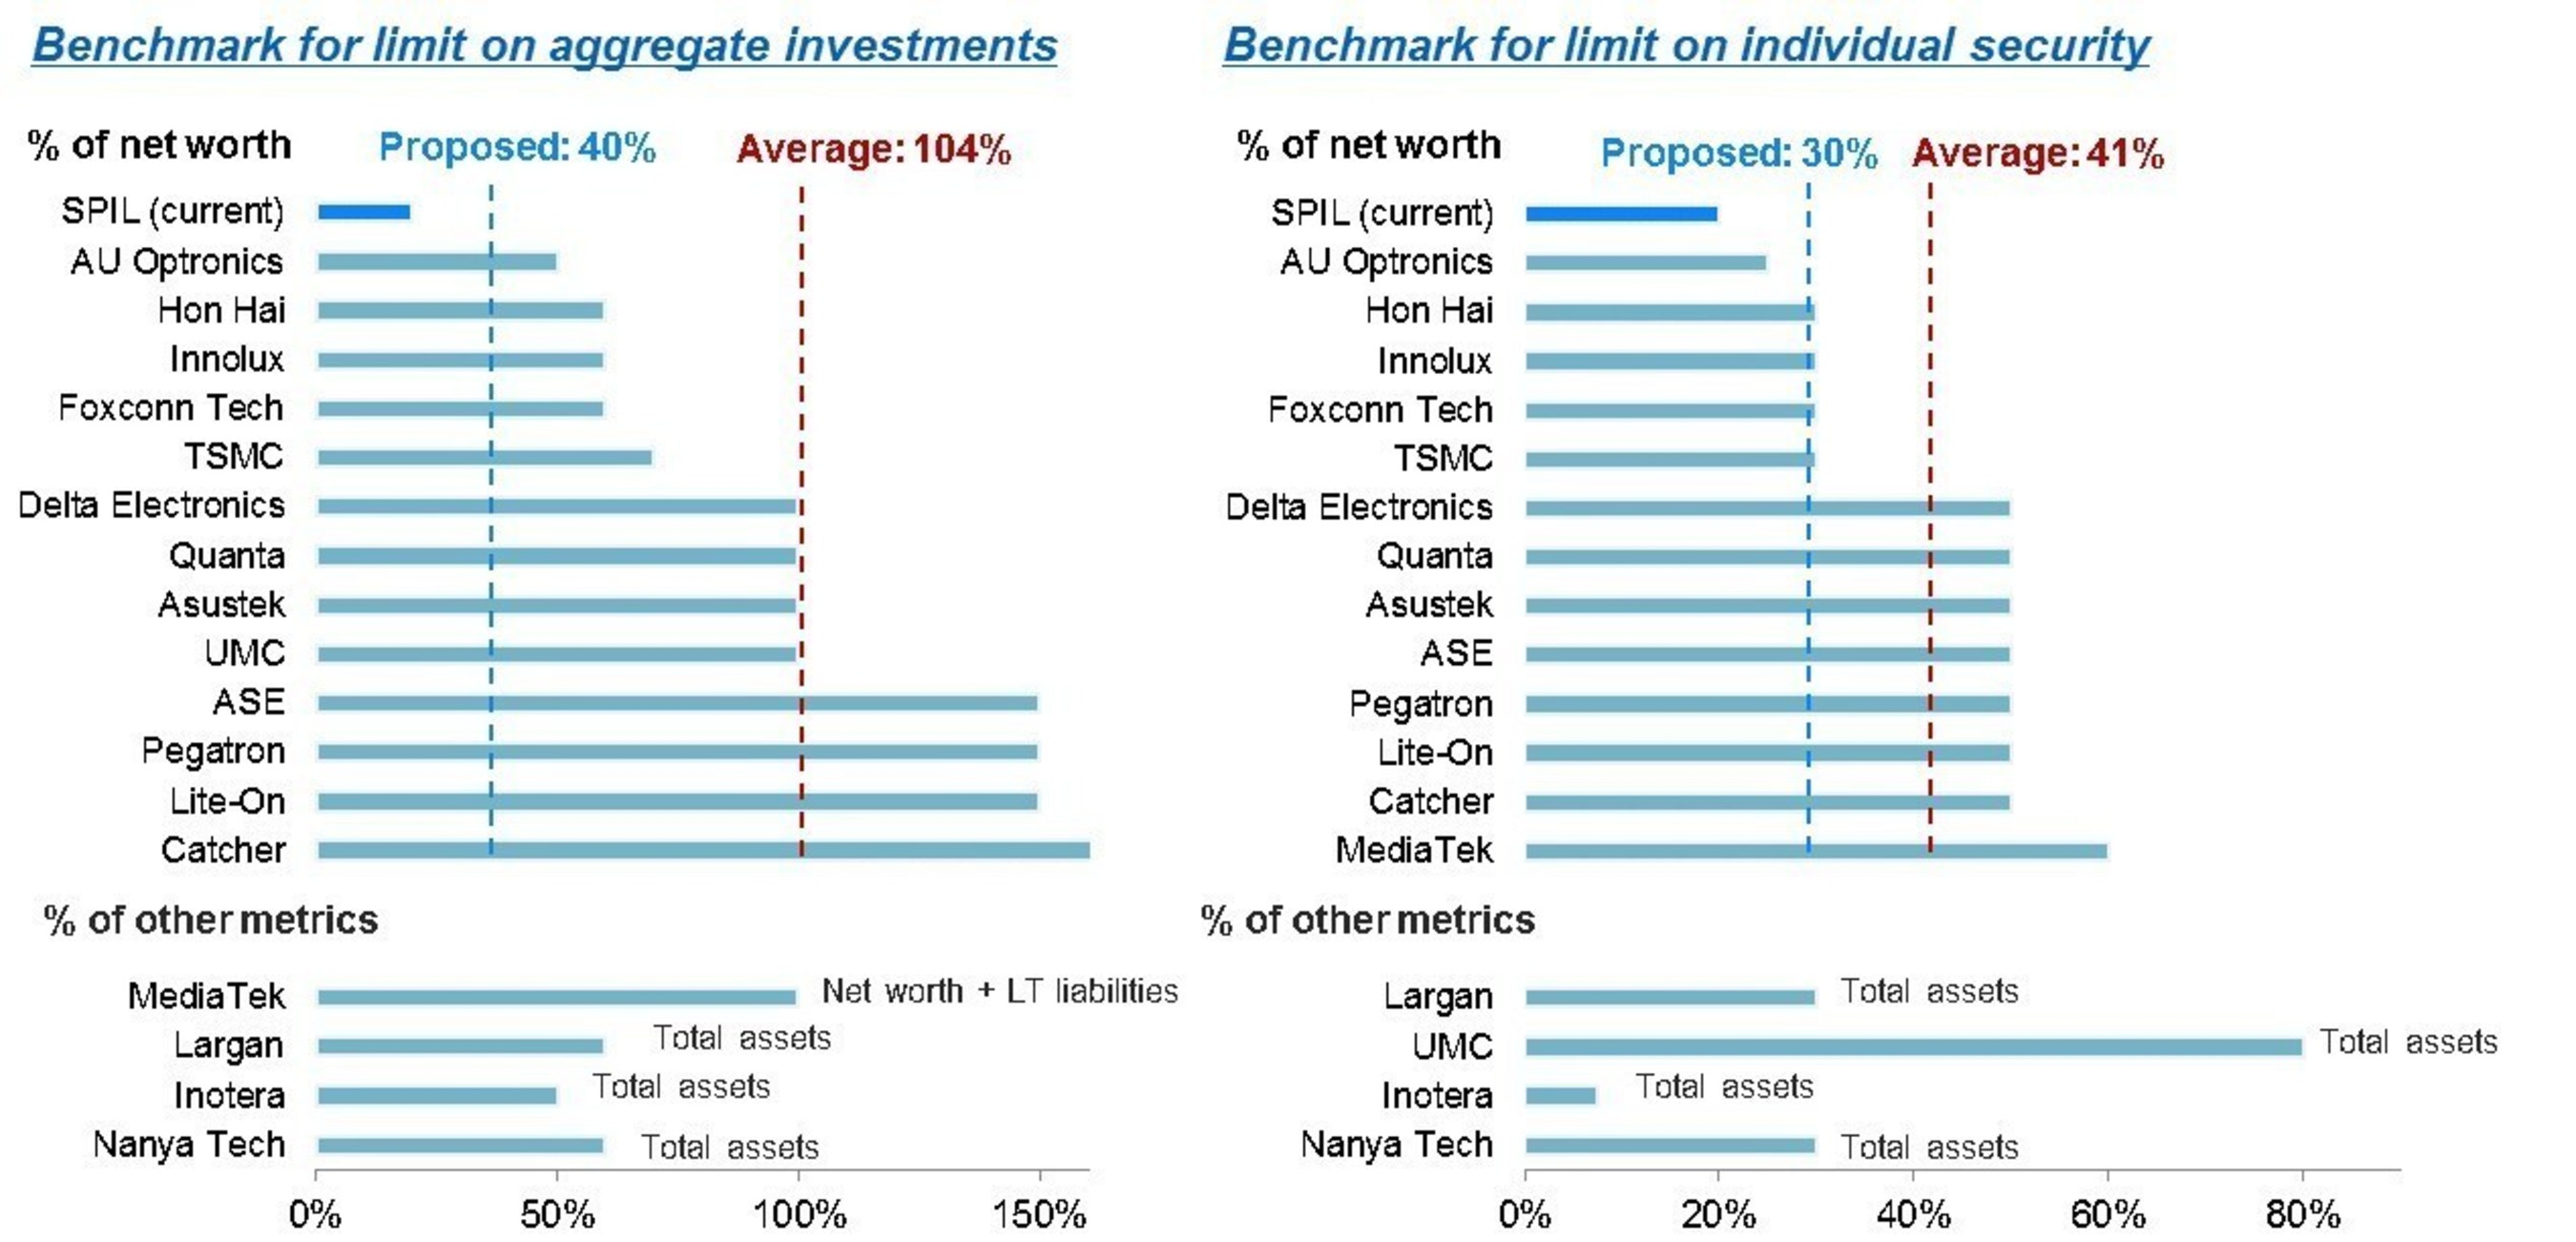 Benchmark for limit on aggregate investments and Benchmark for limit on individual security